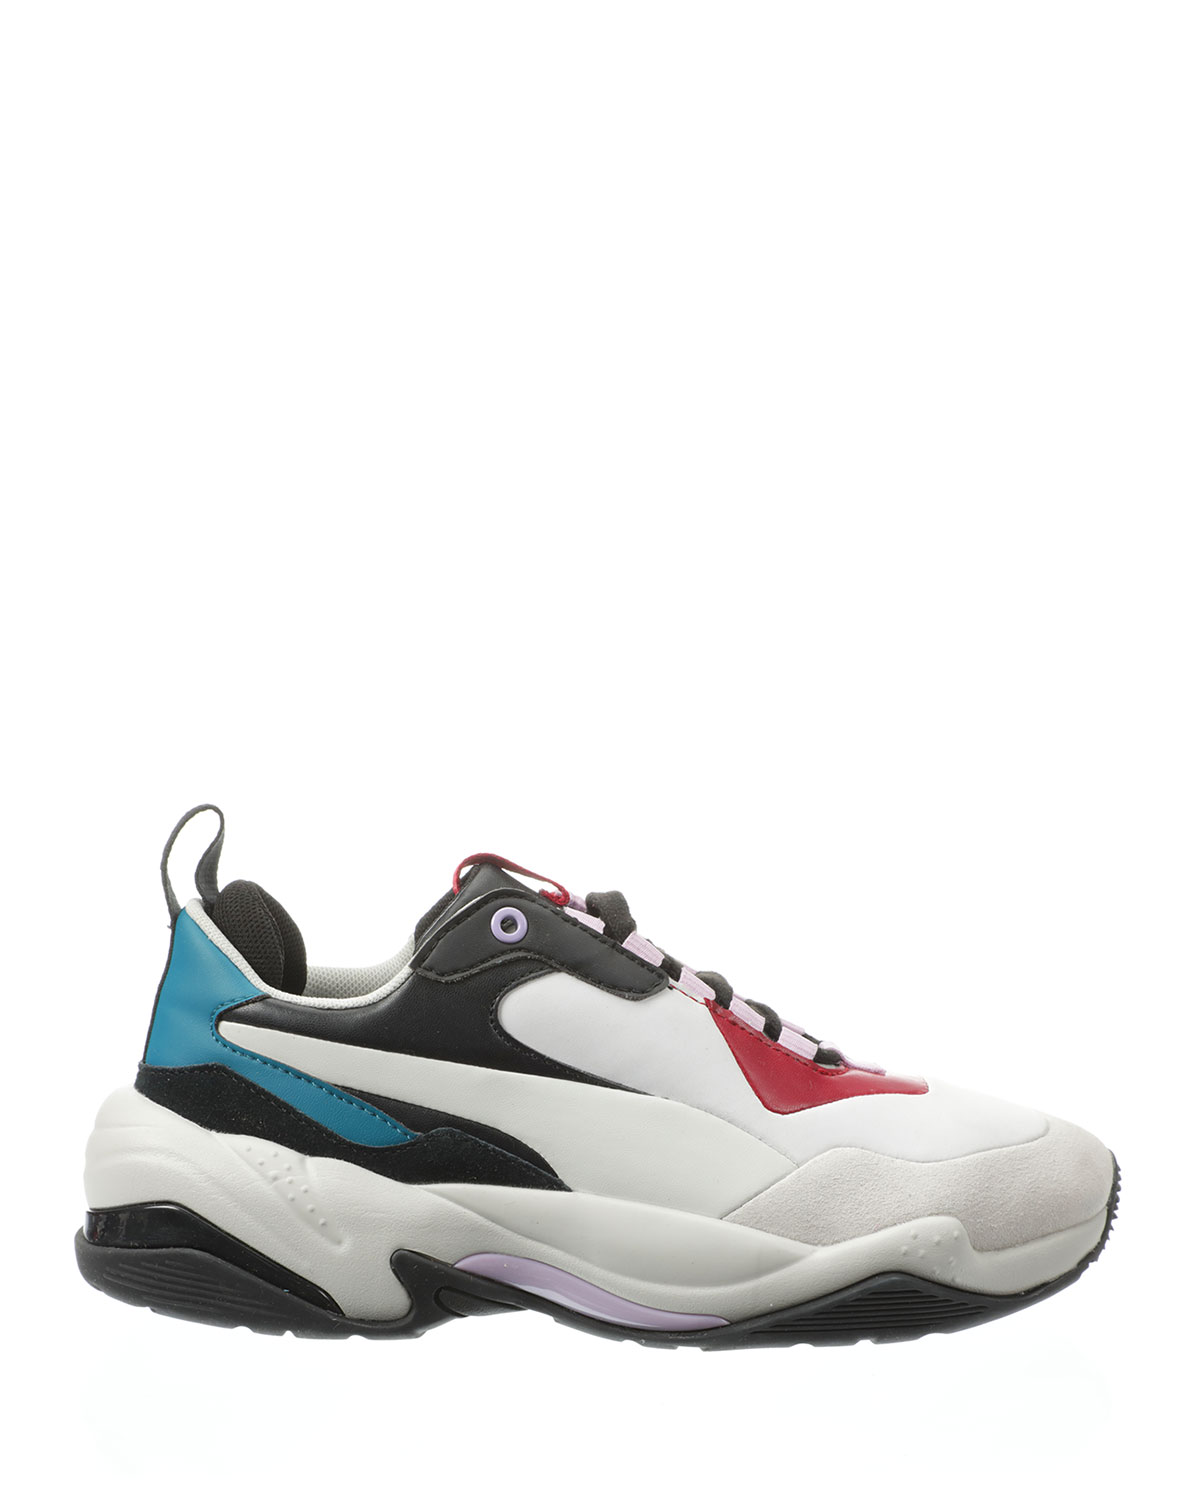 Puma Thunder Rive Droite Sneakers In Gray/Red